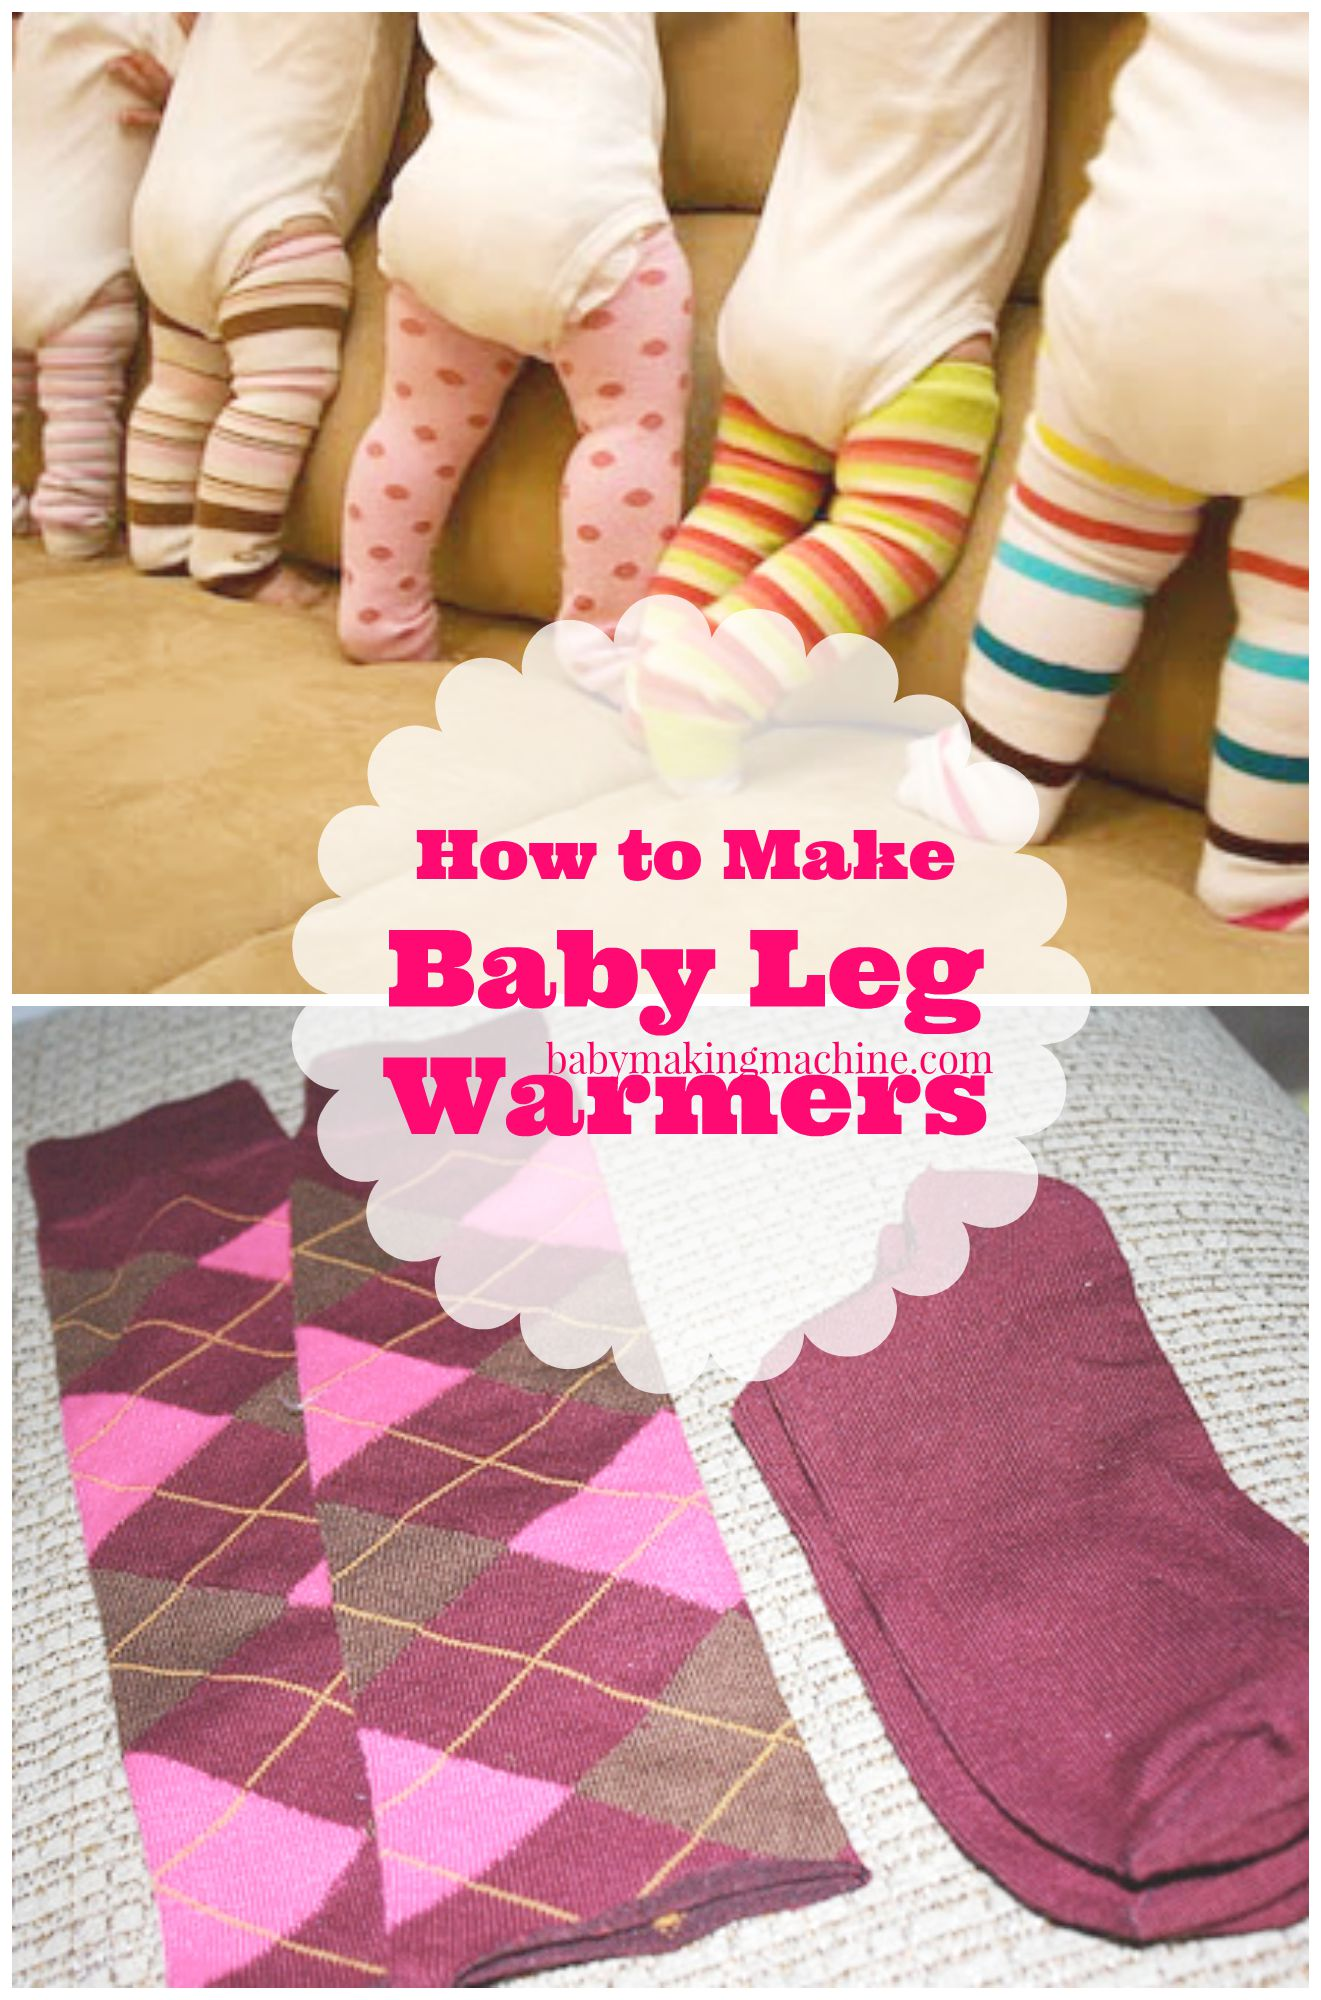 Keep Your Baby Comfortable and Warm with Baby Boys' Leg Warmers. When your little one starts exploring the world, it's important to choose comfortable clothes that let him move freely, and baby boys' leg warmers can help.